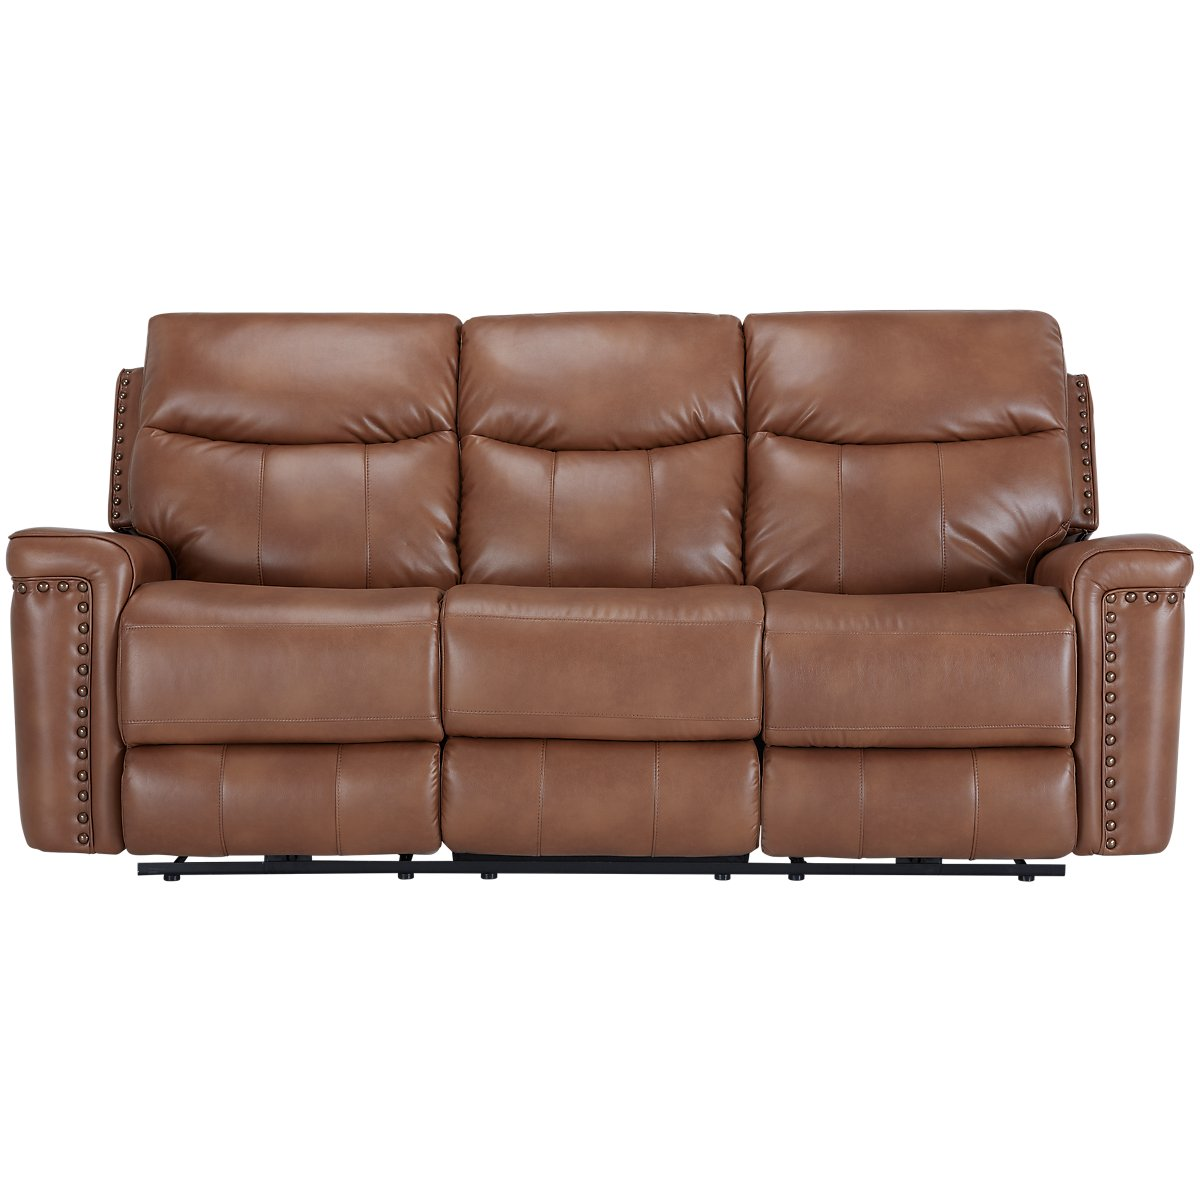 City Furniture Wallace Medium Brown Microfiber Reclining Sofa